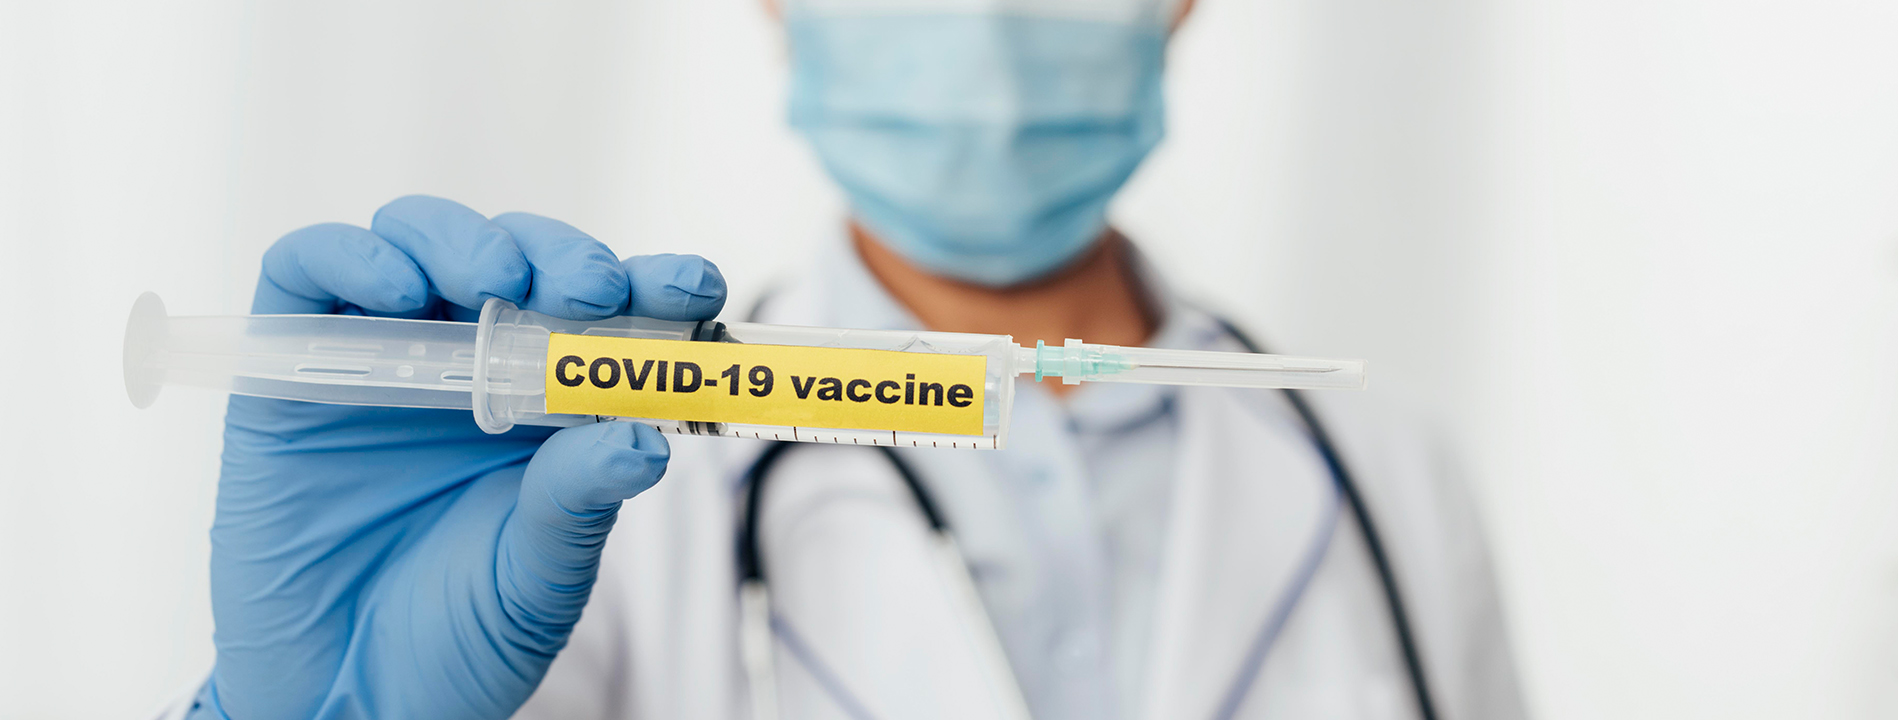 6 Things to Know About the COVID Vaccine